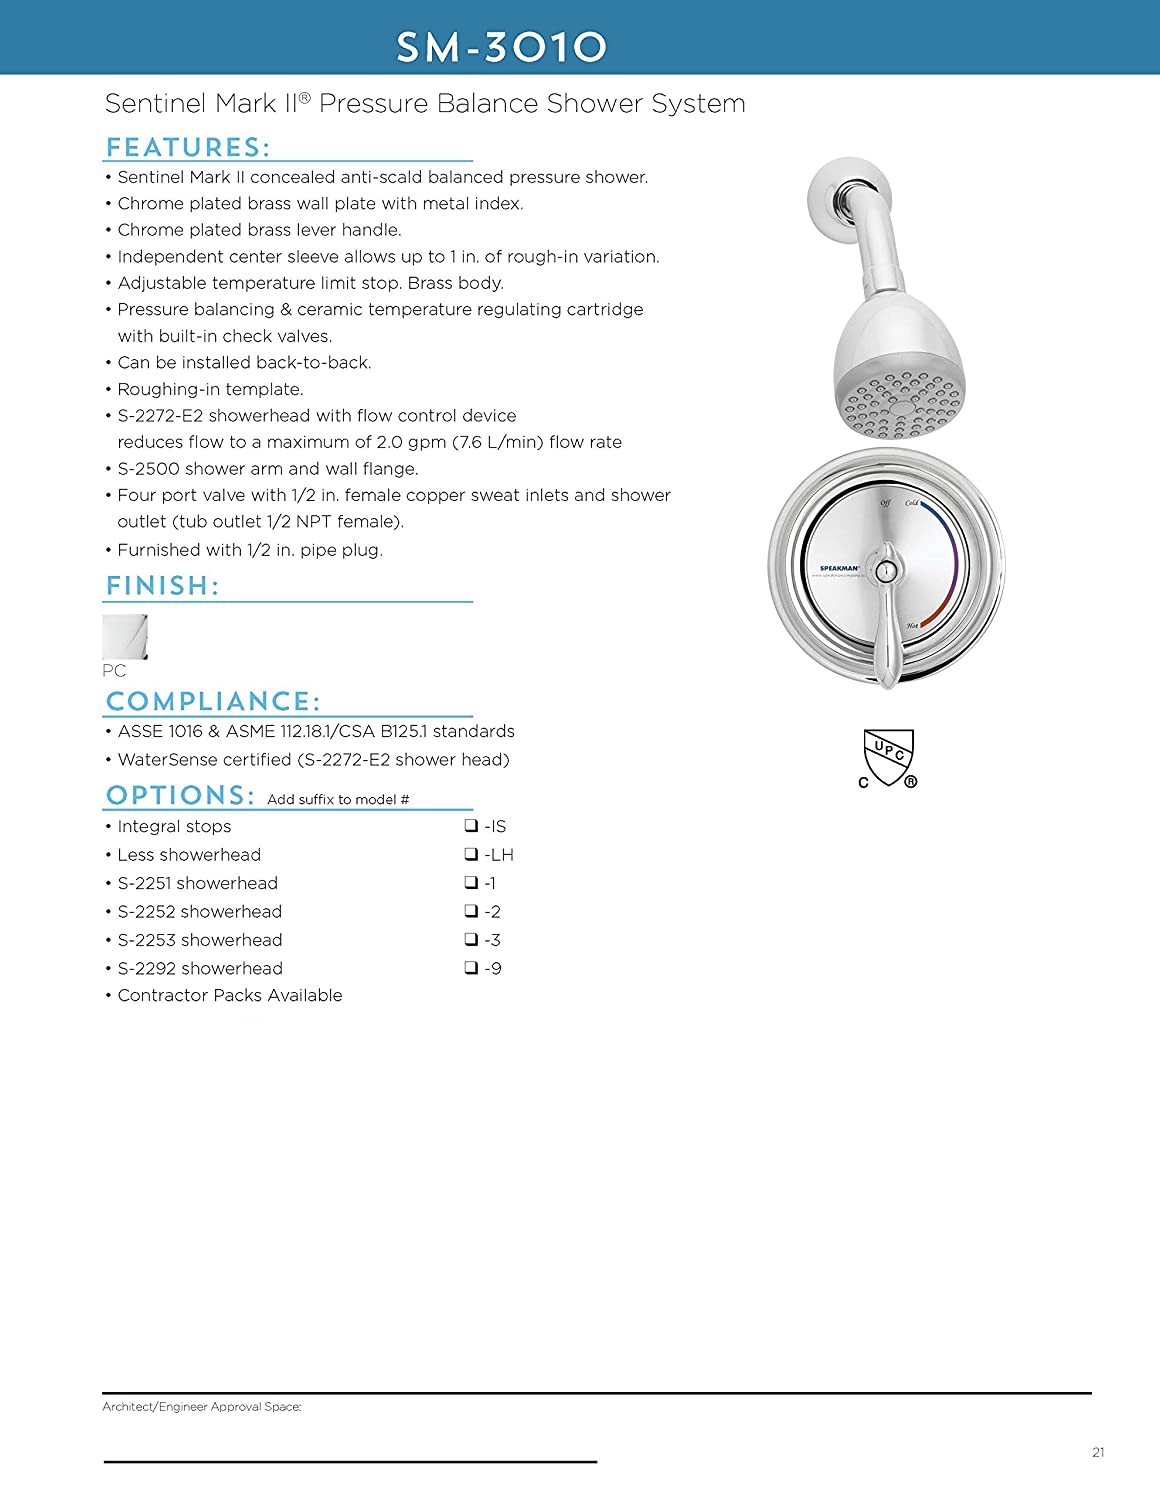 Polished Chrome Speakman Sm 3010 Is Sentinel Mark Ii Pressure Balanced Shower Combination With Integral Stops